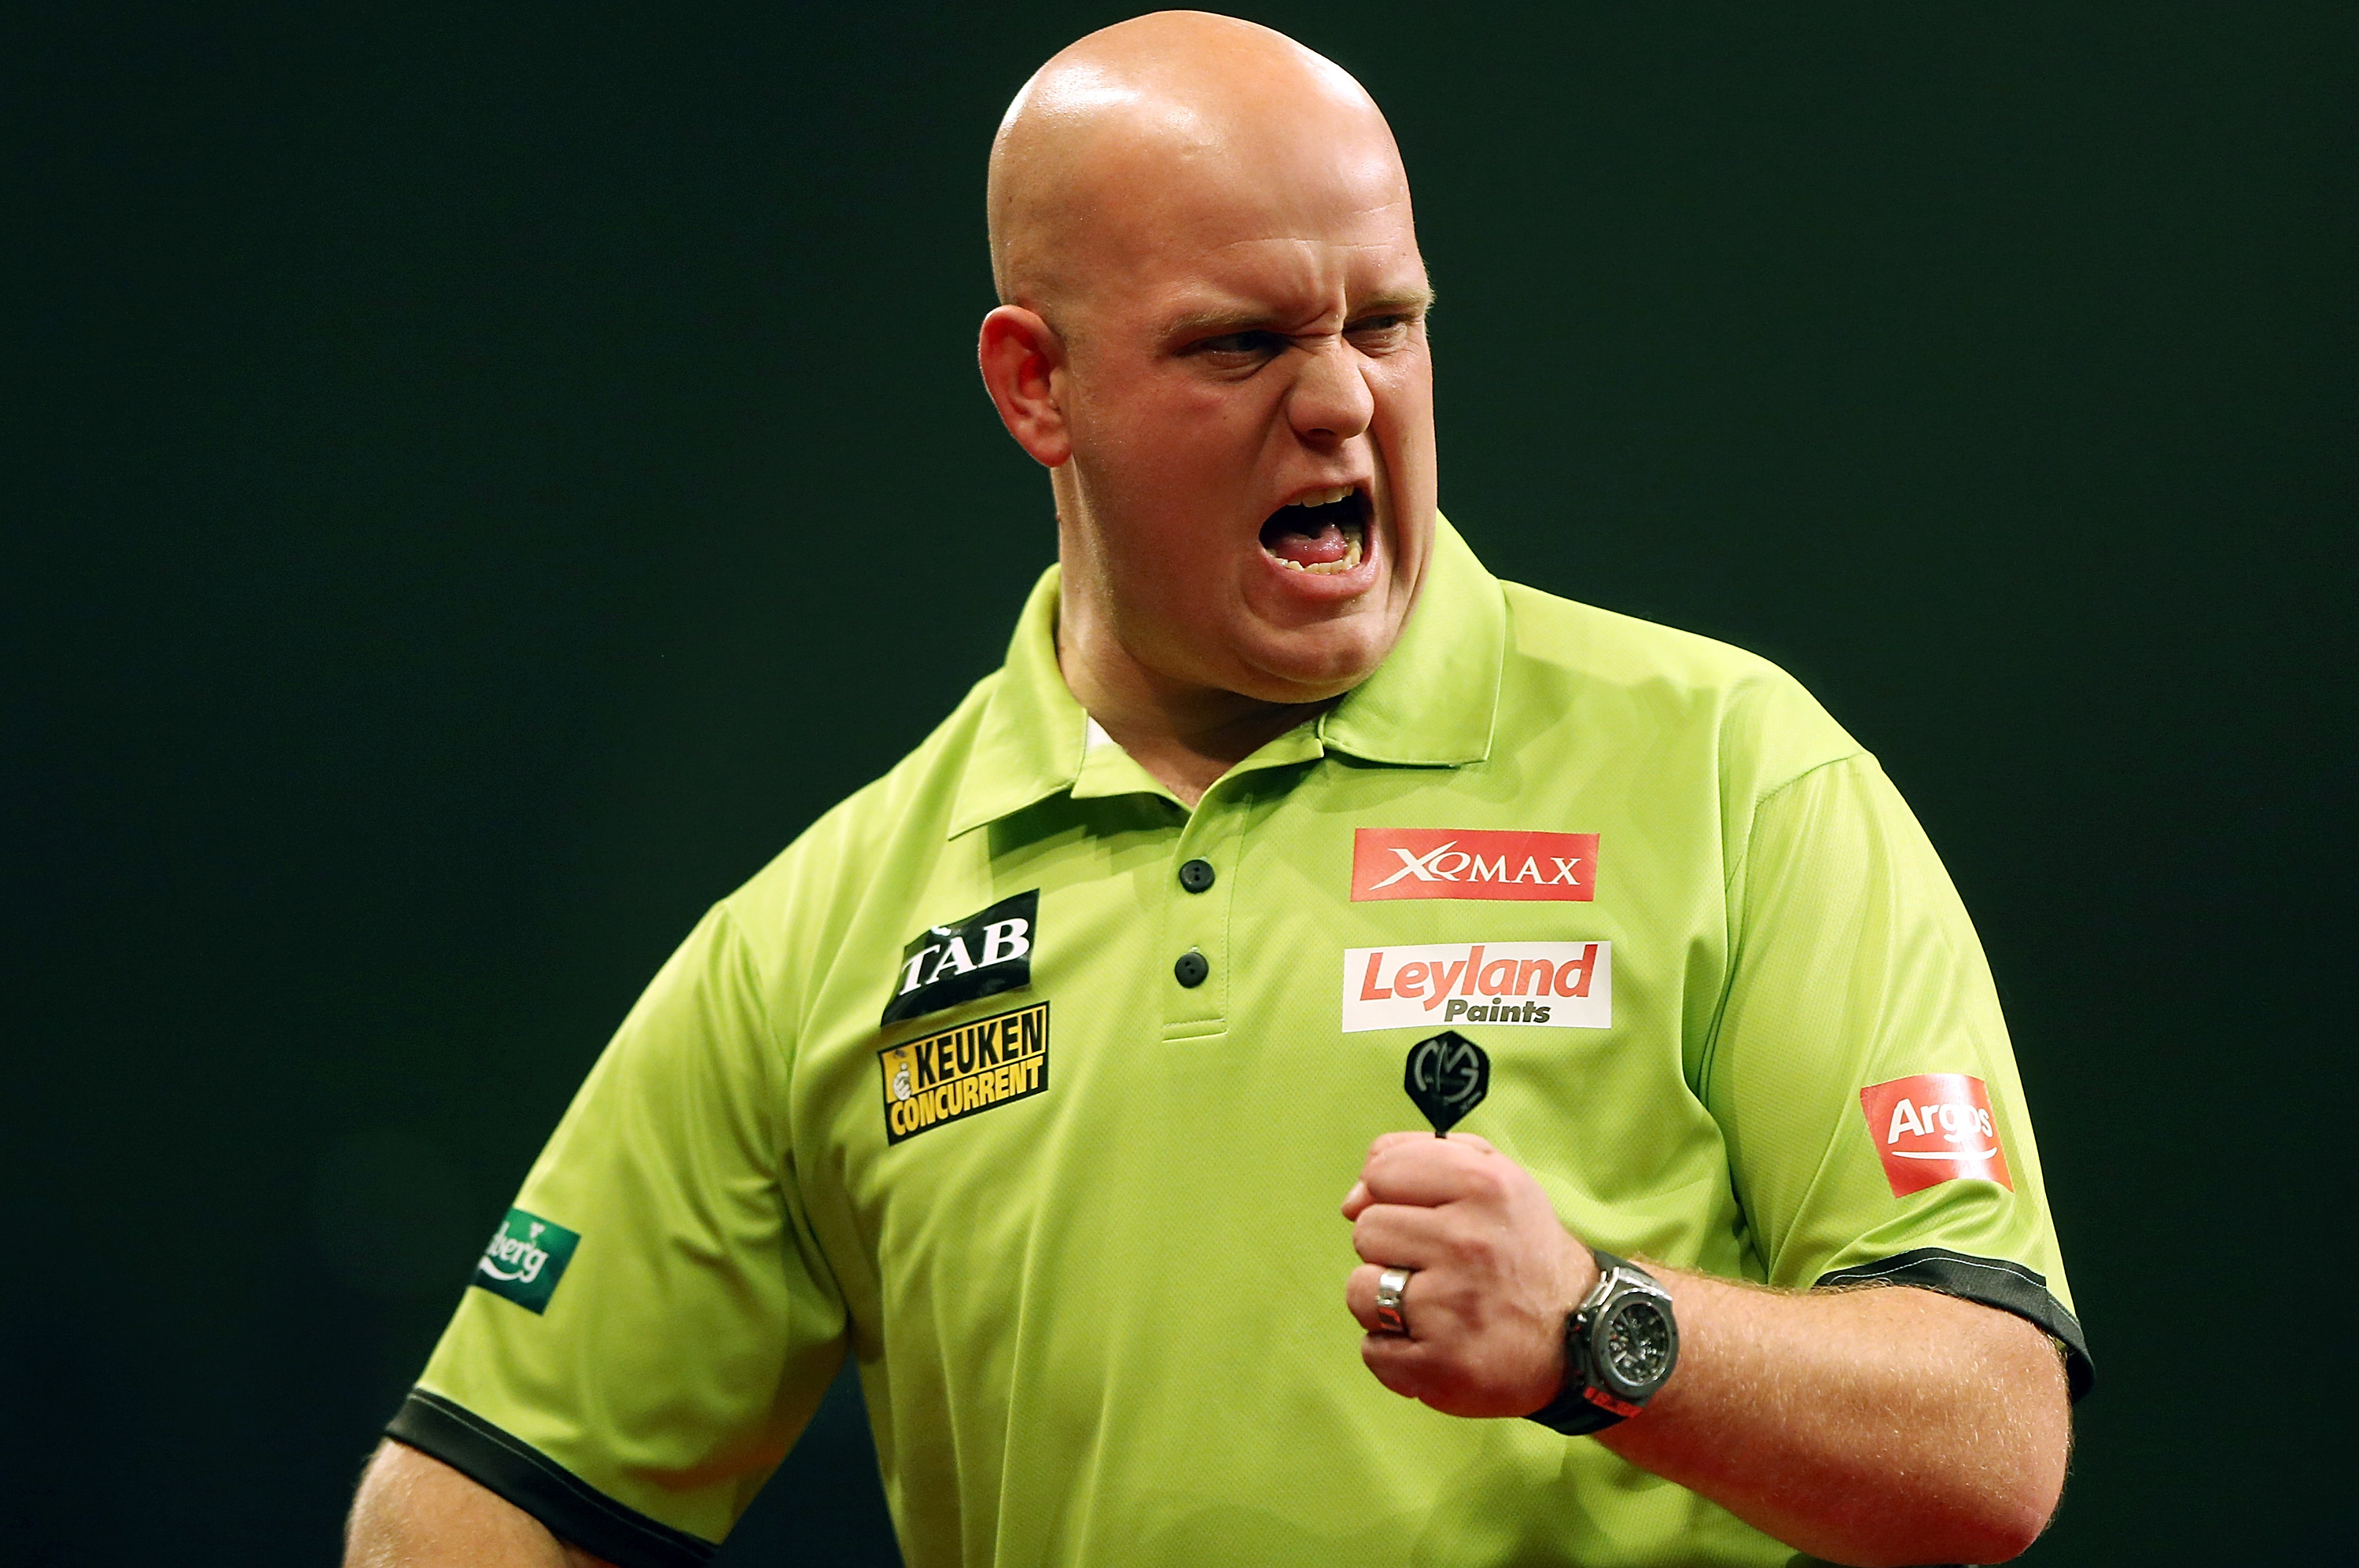 World Series of Darts Finals 2015: Final Scores, Results and Prize ...